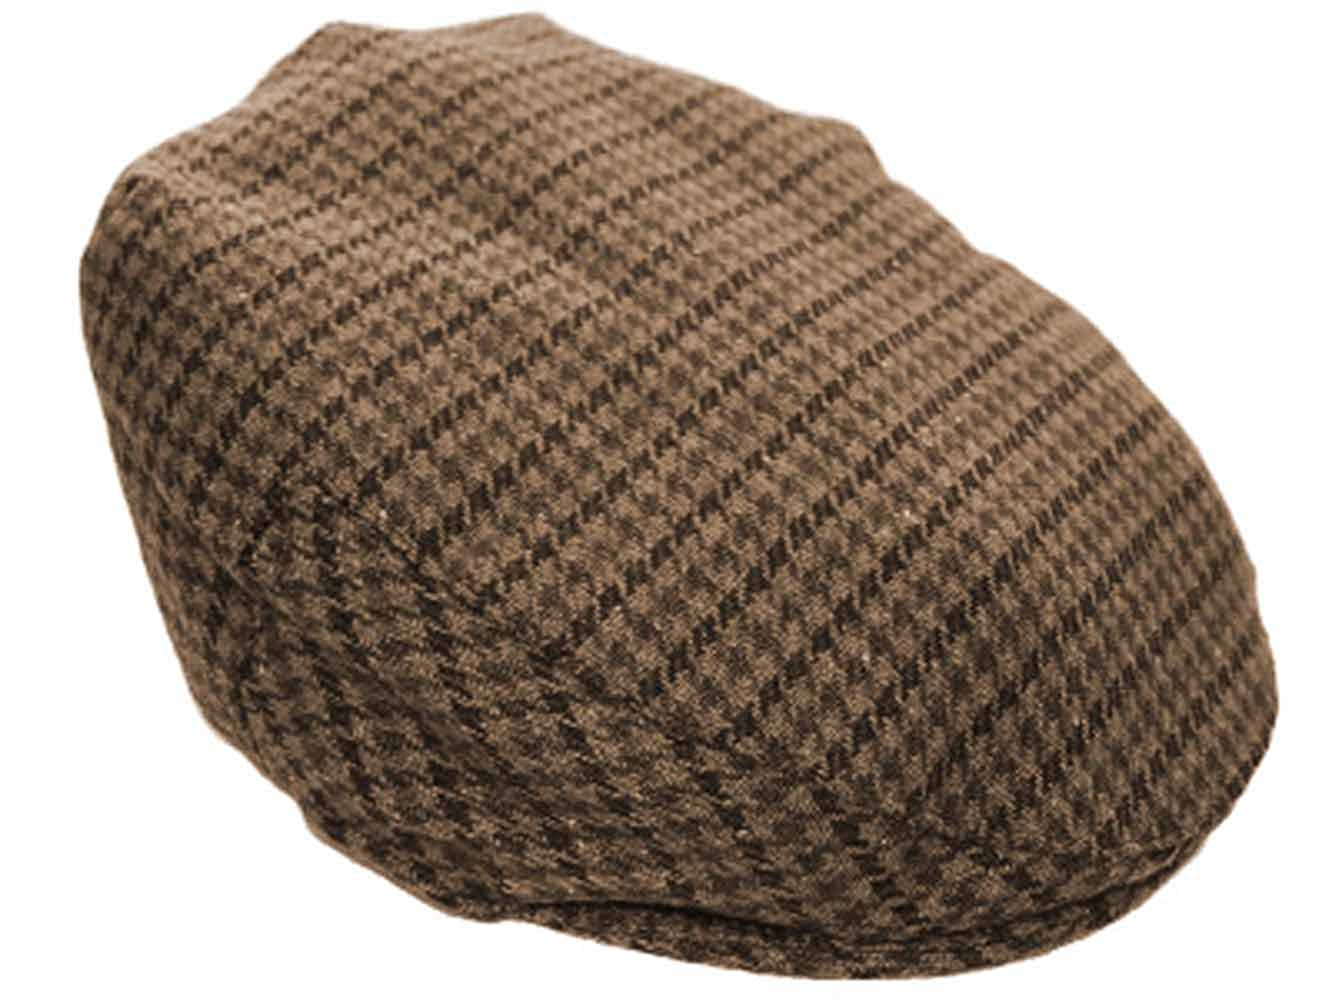 NEW TWEED COUNTRY FLAT CAP 6 SIZES AVAILABLE